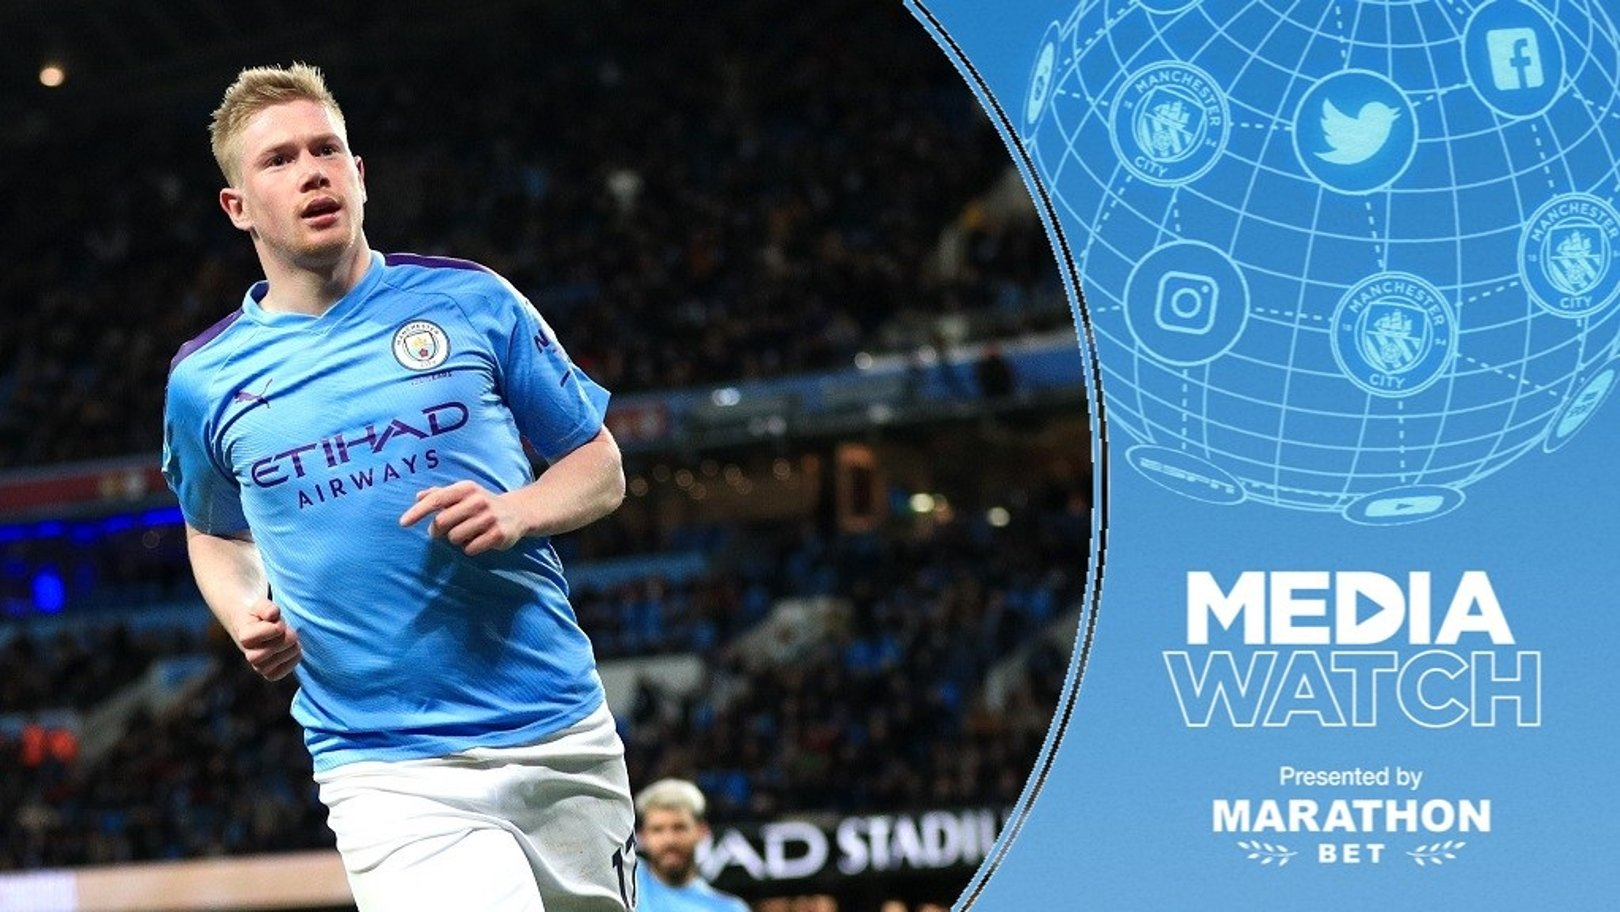 De Bruyne tipped for top PFA prize